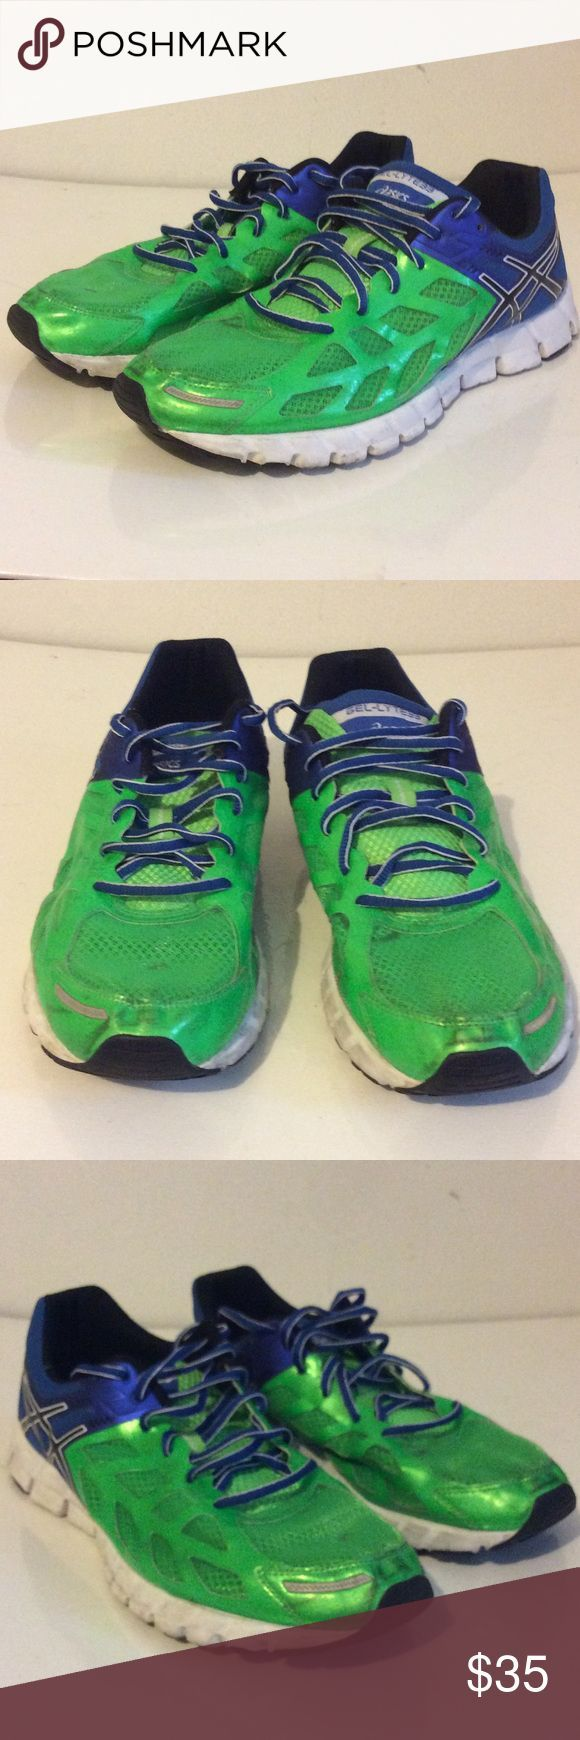 Asics Gel-Lyte 33 mens running shoes size 11 Good condition. Has some marks in the front of both shoes, some wear and writing on the bottom. See pictures. Size 11. Asics Shoes Athletic Shoes